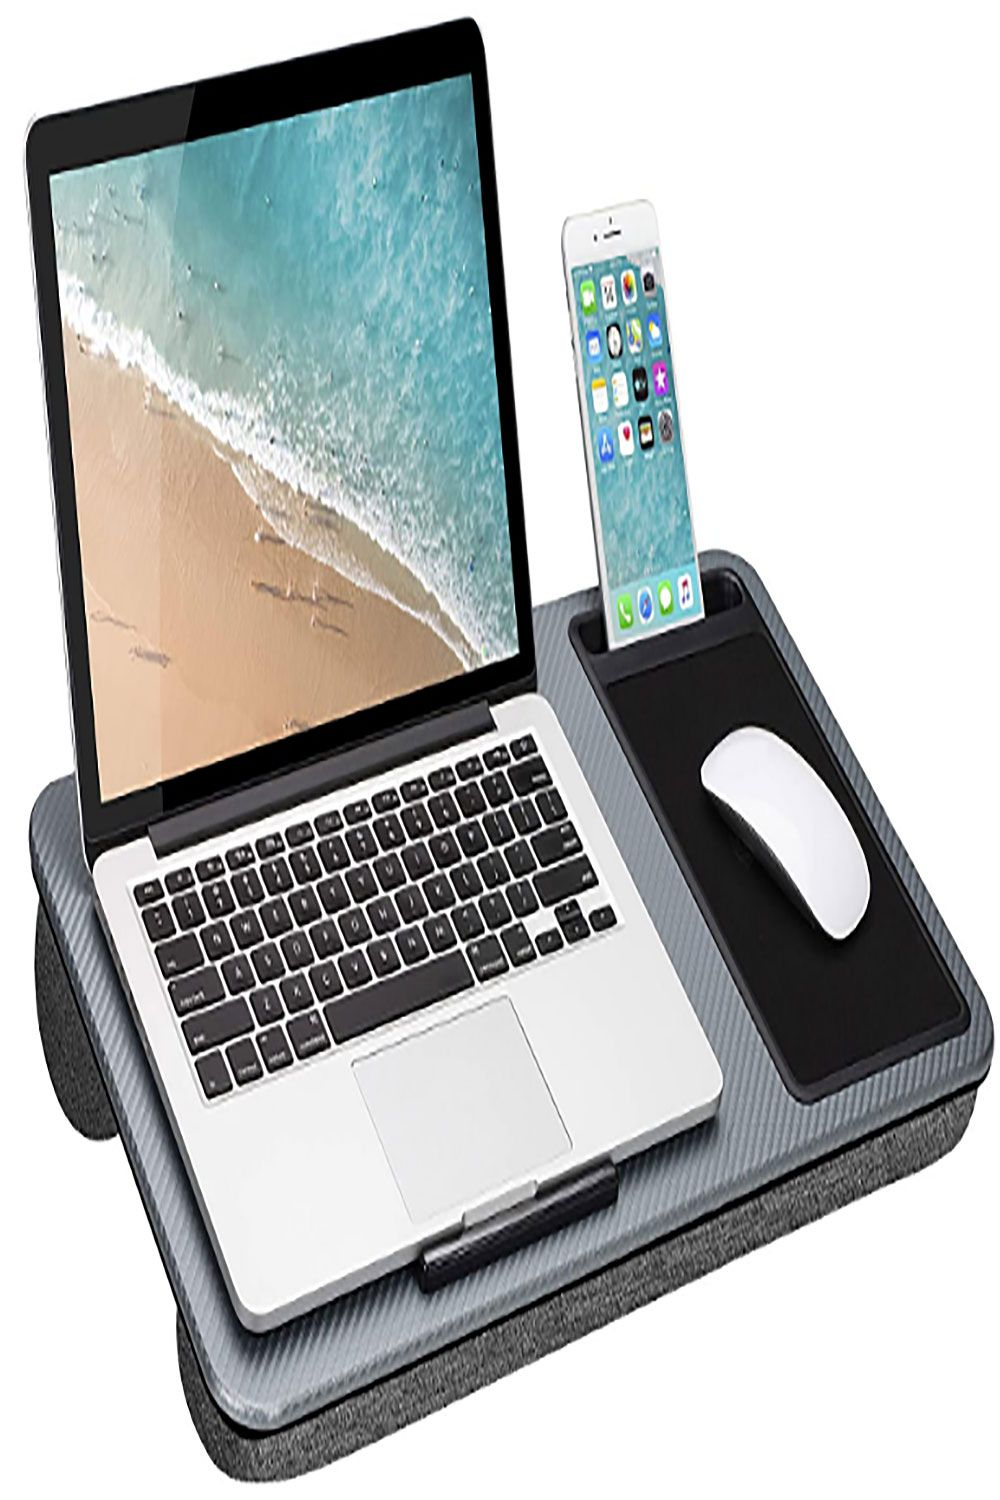 Laptop Lap Board with Mouse Pad and Phone slot